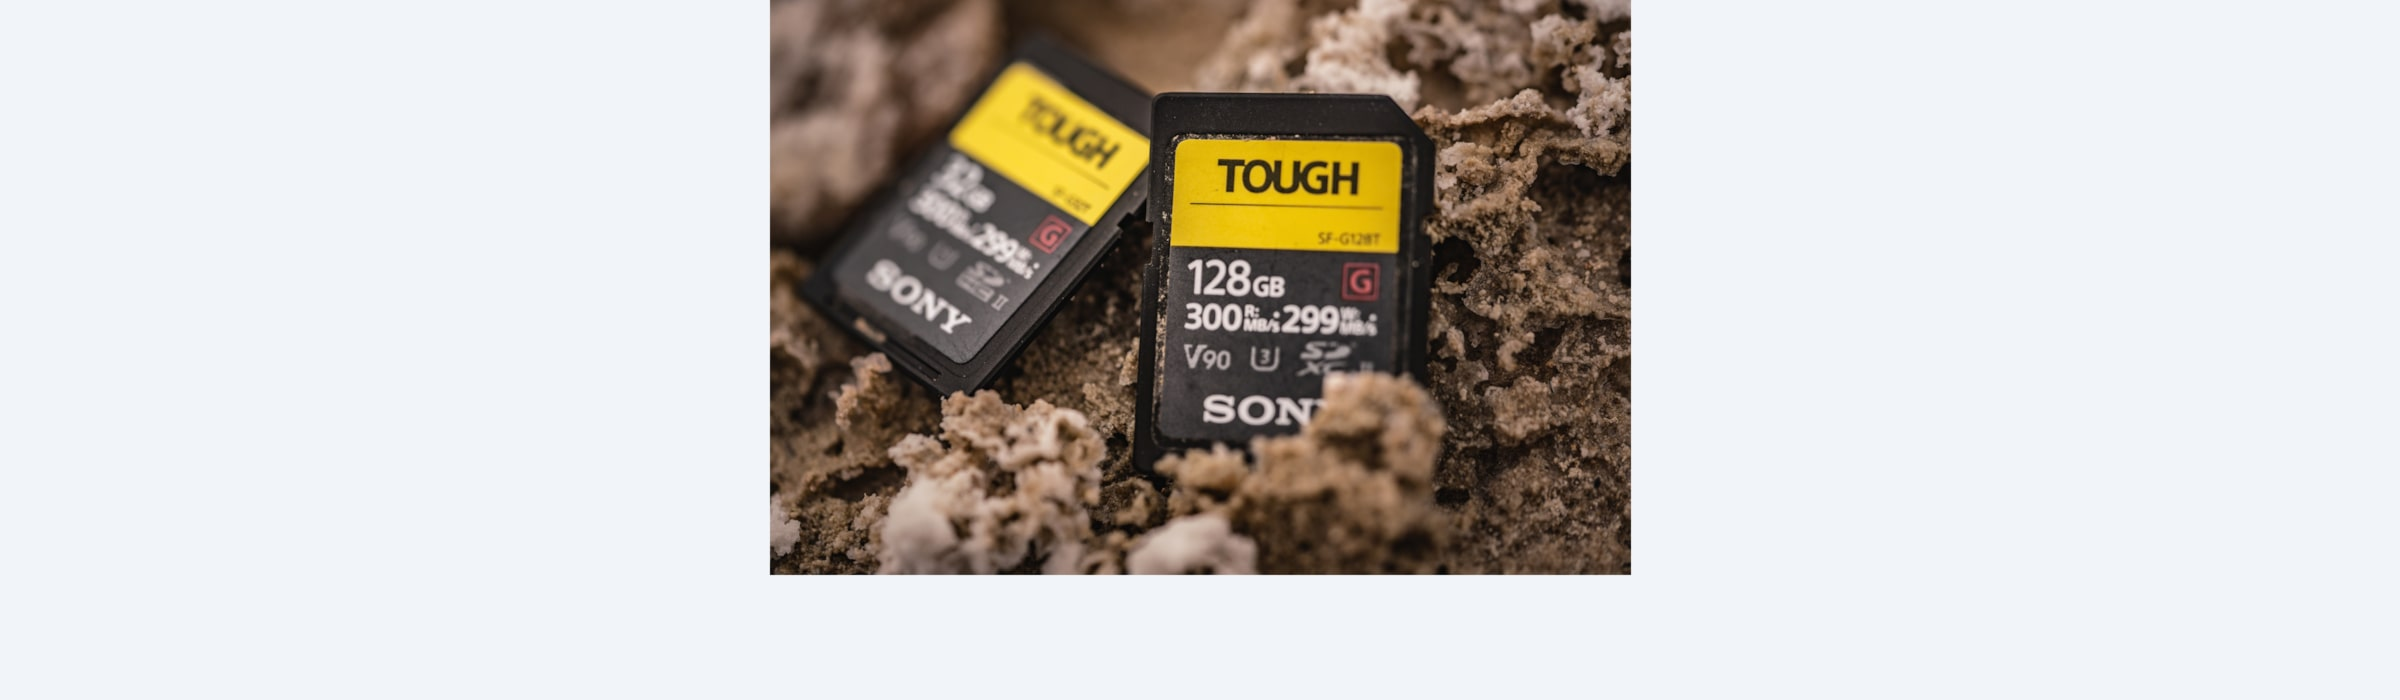 SF-G series TOUGH specification memory card in action